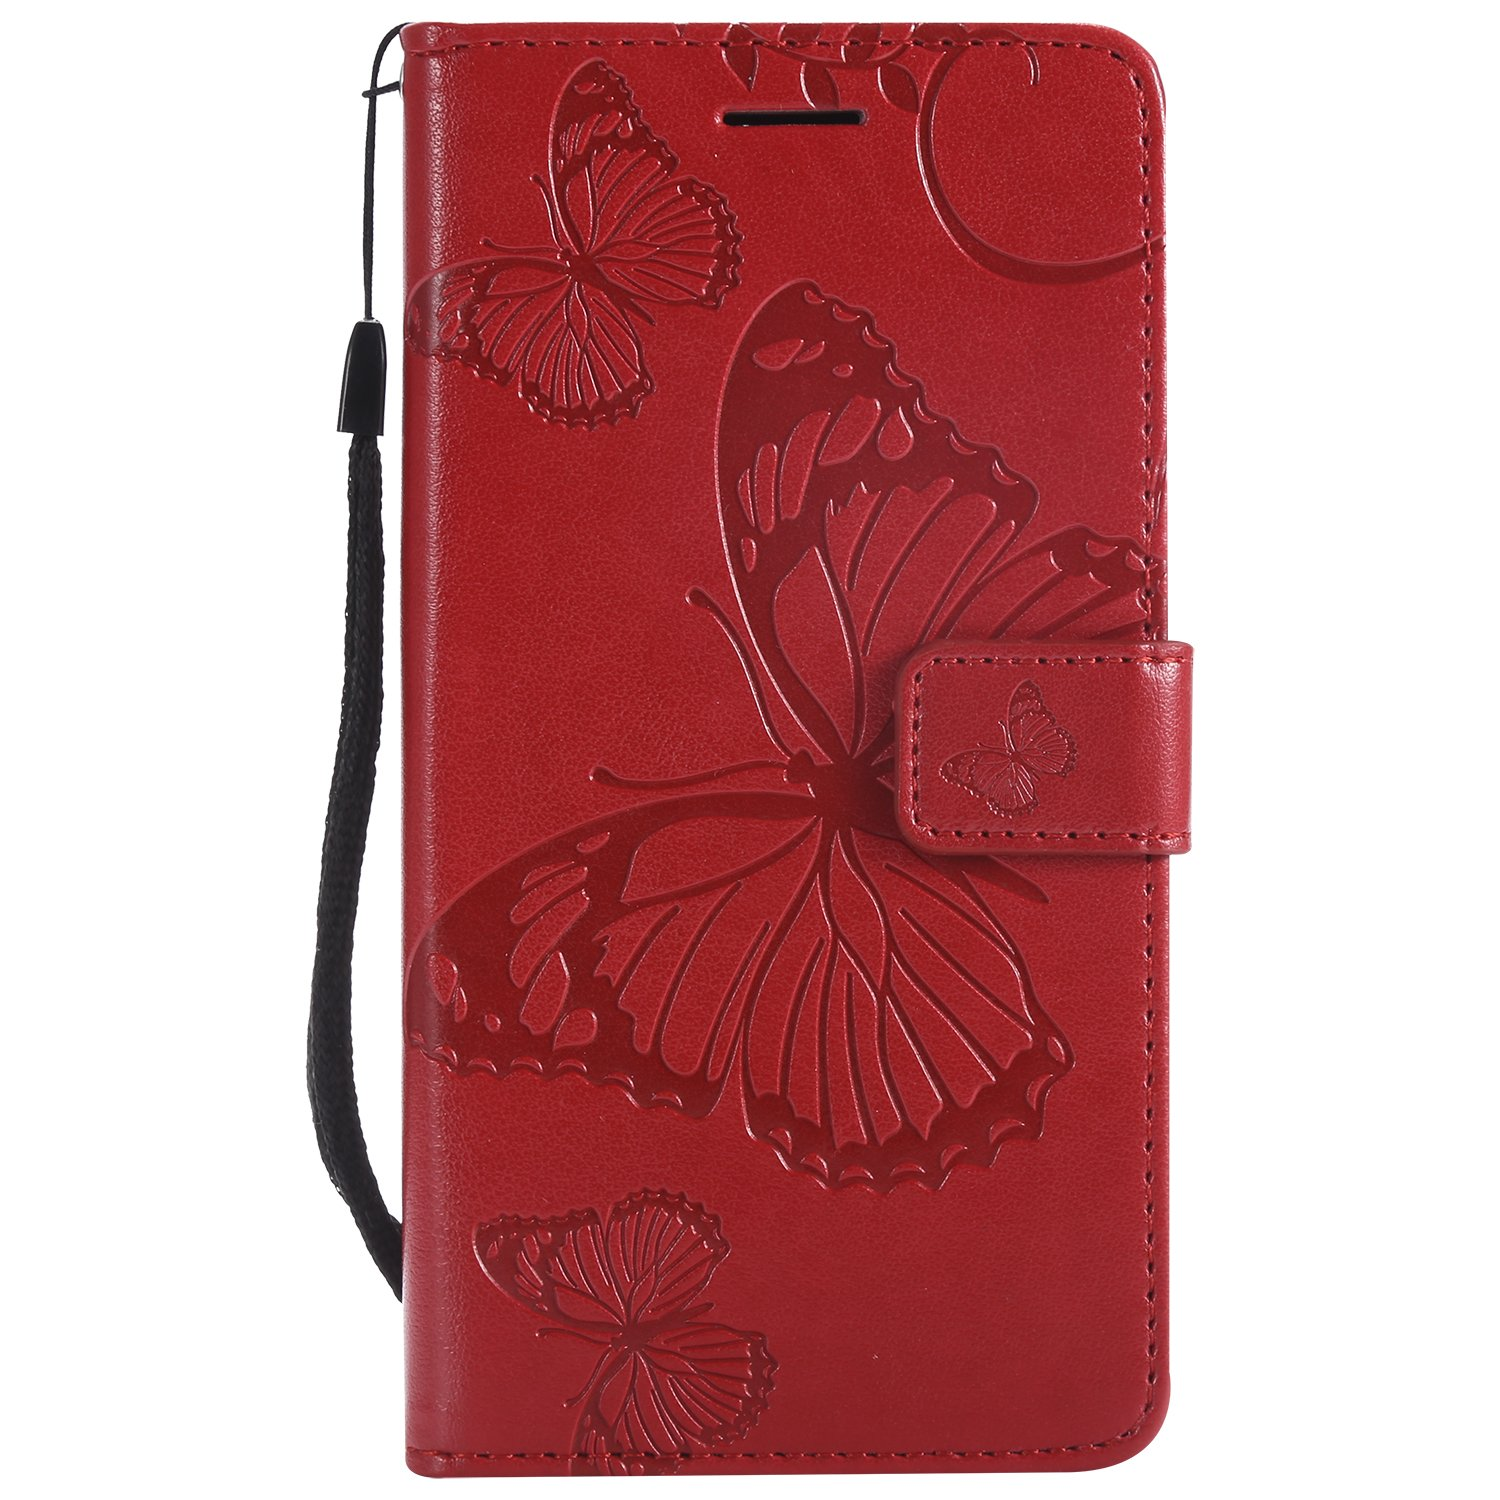 FNBK Magnetic Closure Leather Flip Notebook Wallet Cover Red 3D Embossed Butterfly Kickstand ID Slot Cash Pocket Bumper Protective Case Folio Case for Huawei P8 Lite 2017